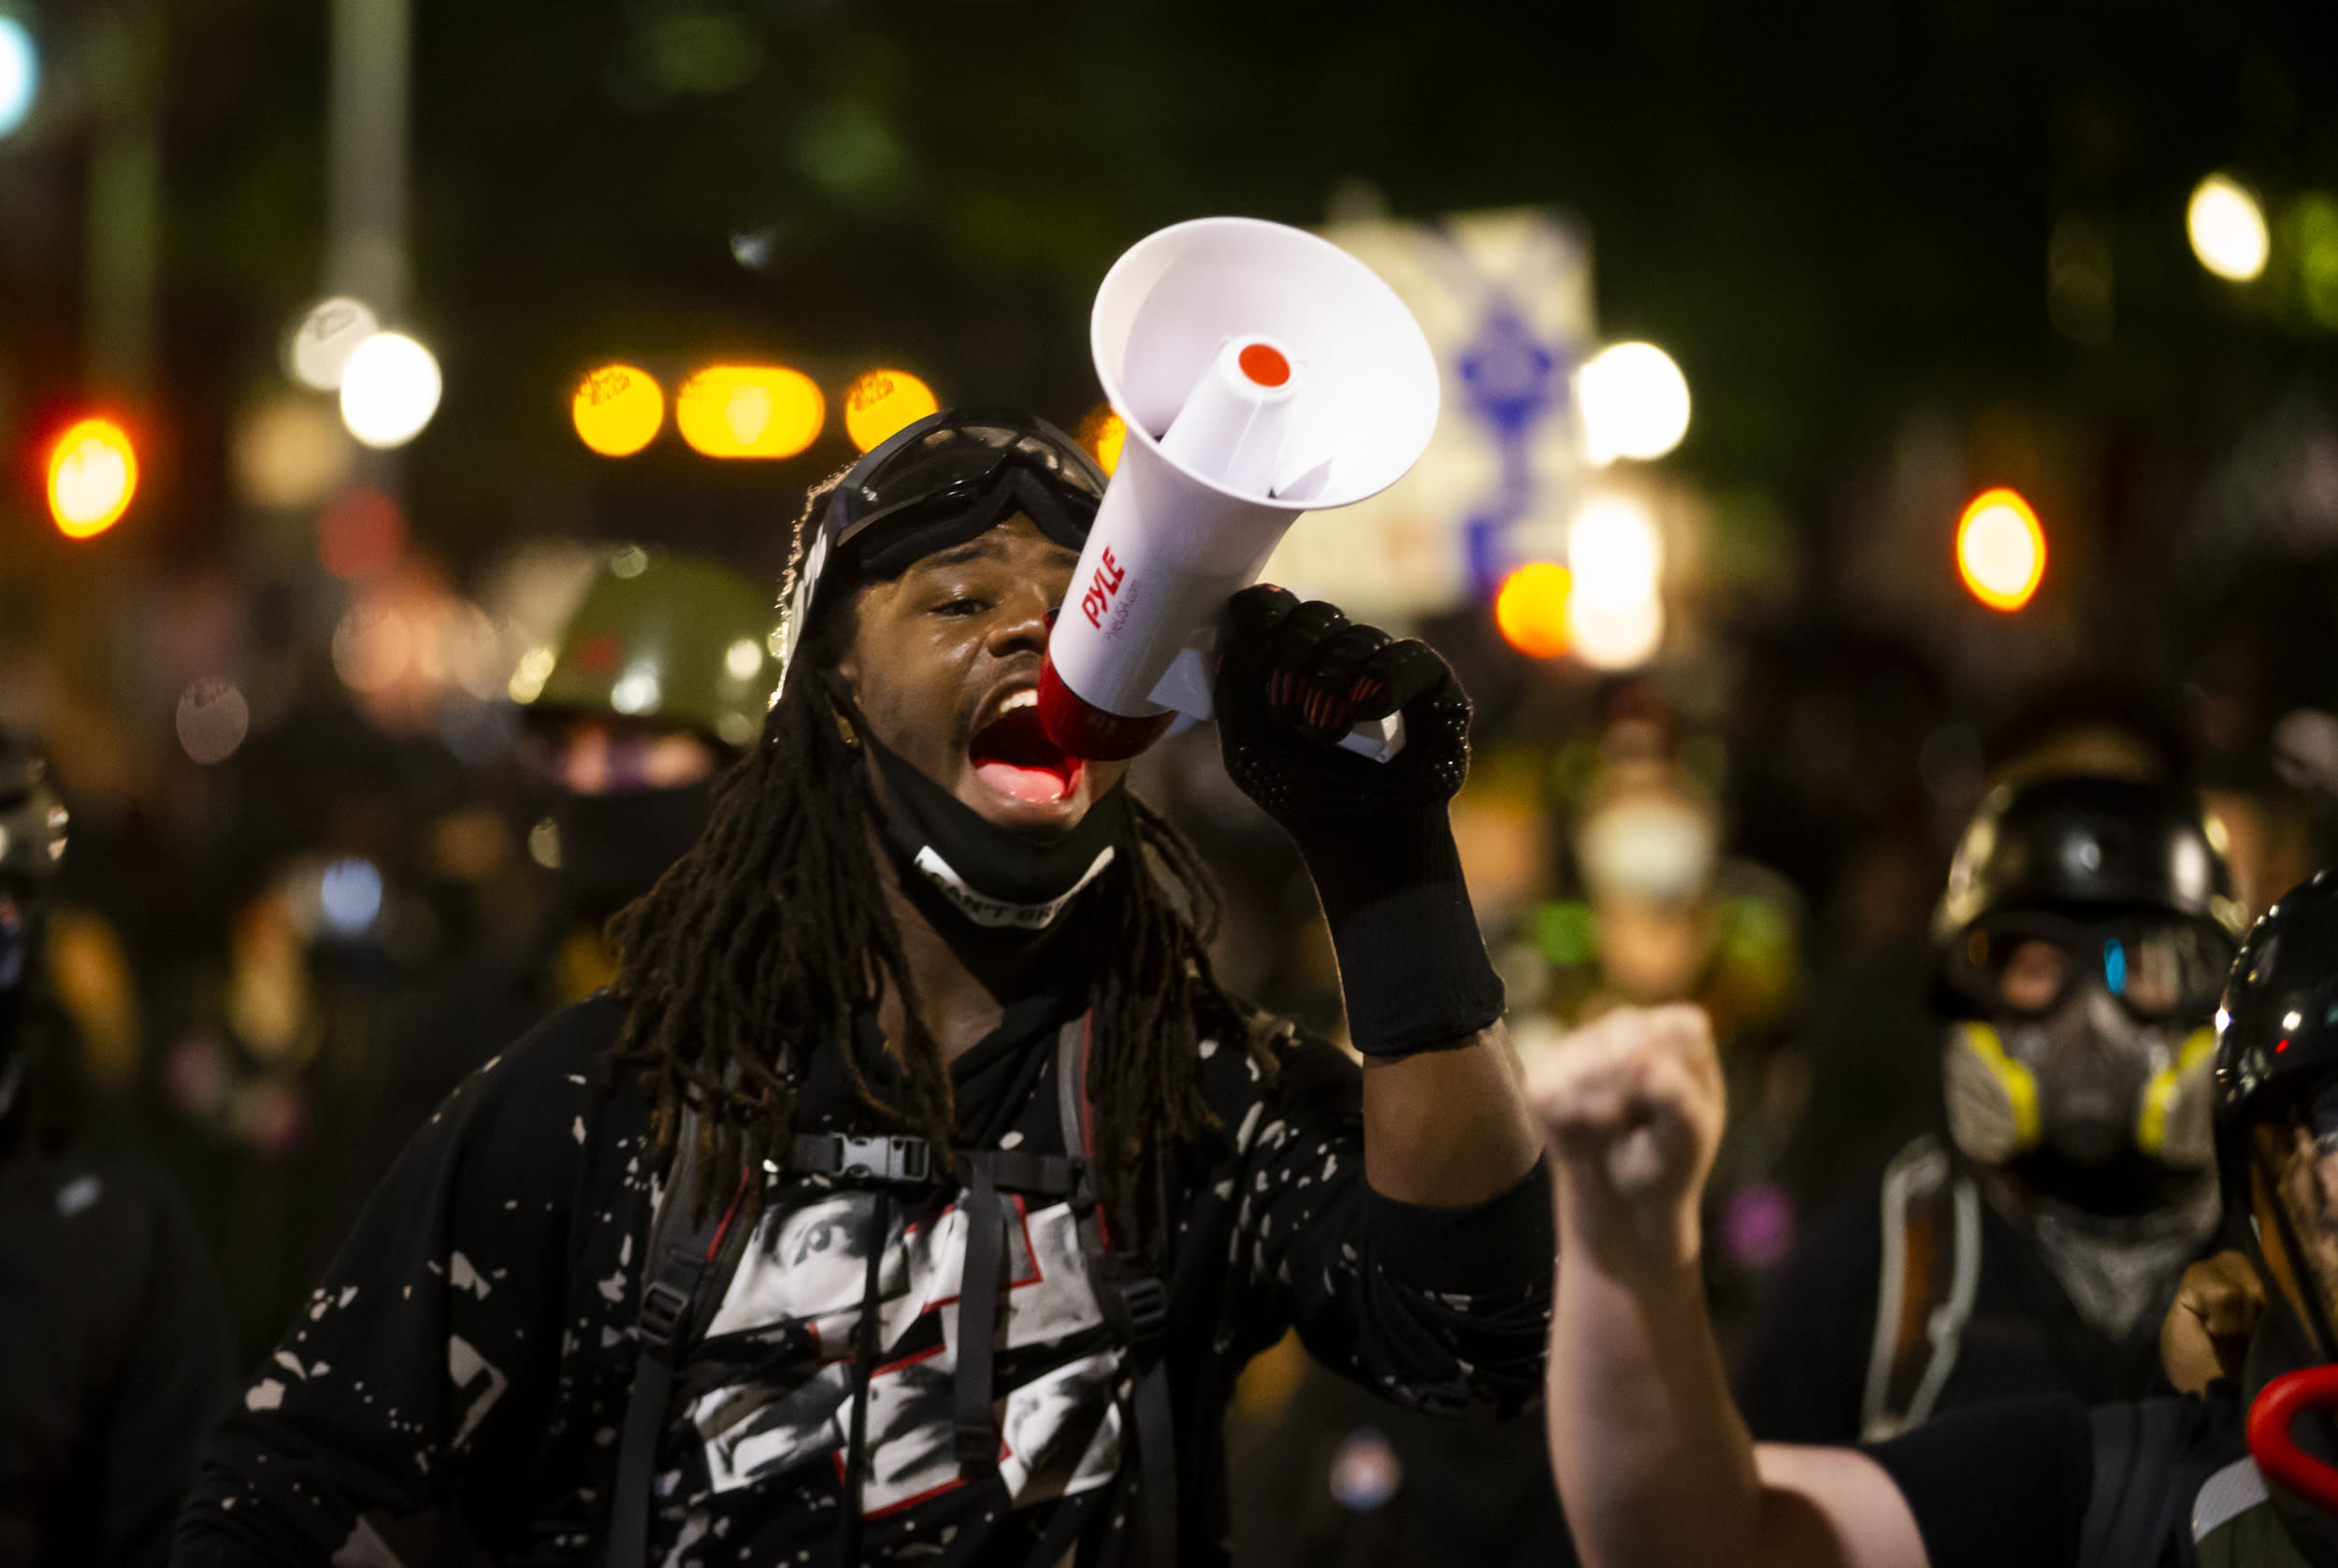 A protester uses a megaphone during a demonstration in Portland, Ore., on Tuesday, Aug. 25, 2020. Officials say protesters in Portland smashed windows at City Hall in a demonstration that started Tuesday night and stretched into Wednesday morning. (Dave Killen/The Oregonian via AP)